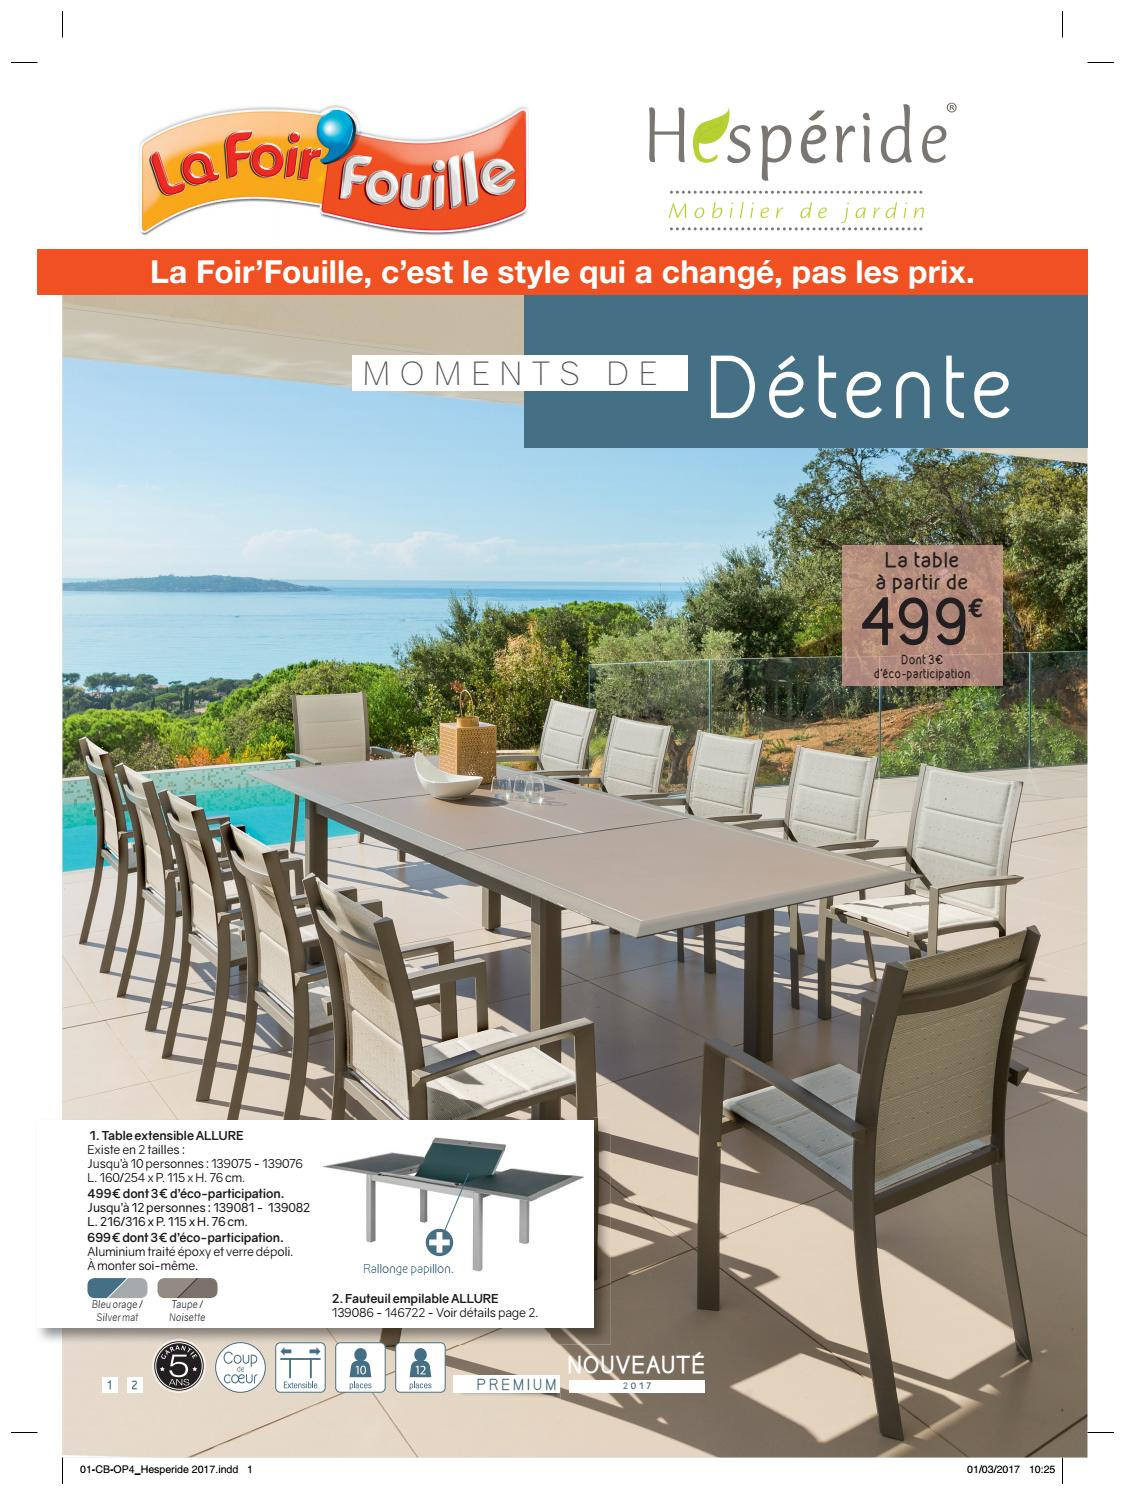 Catalogue hesperide corse by la foir 39 fouille issuu for Table exterieur la foir fouille